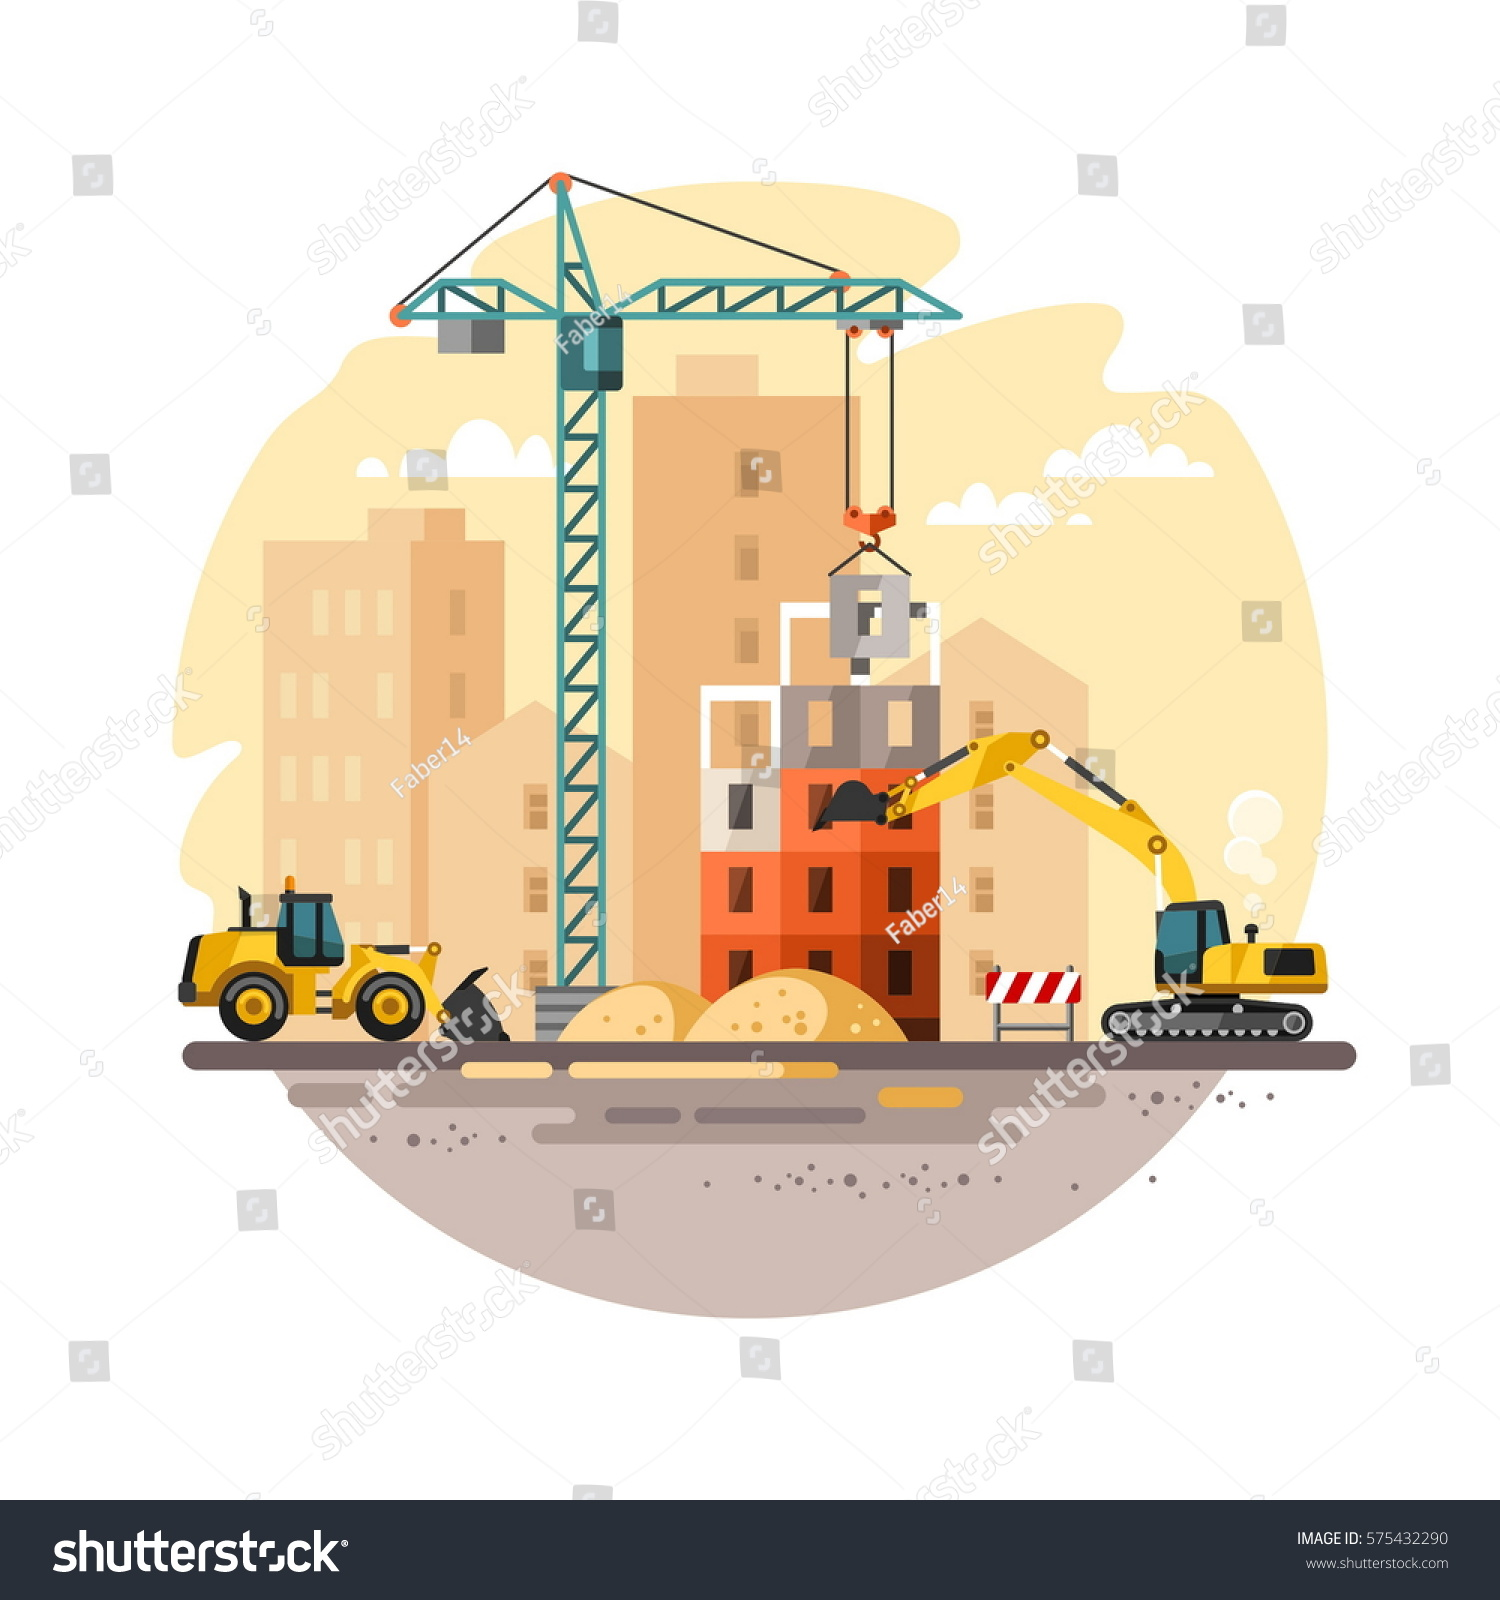 Construction site building house vector illustration stock for Building site house